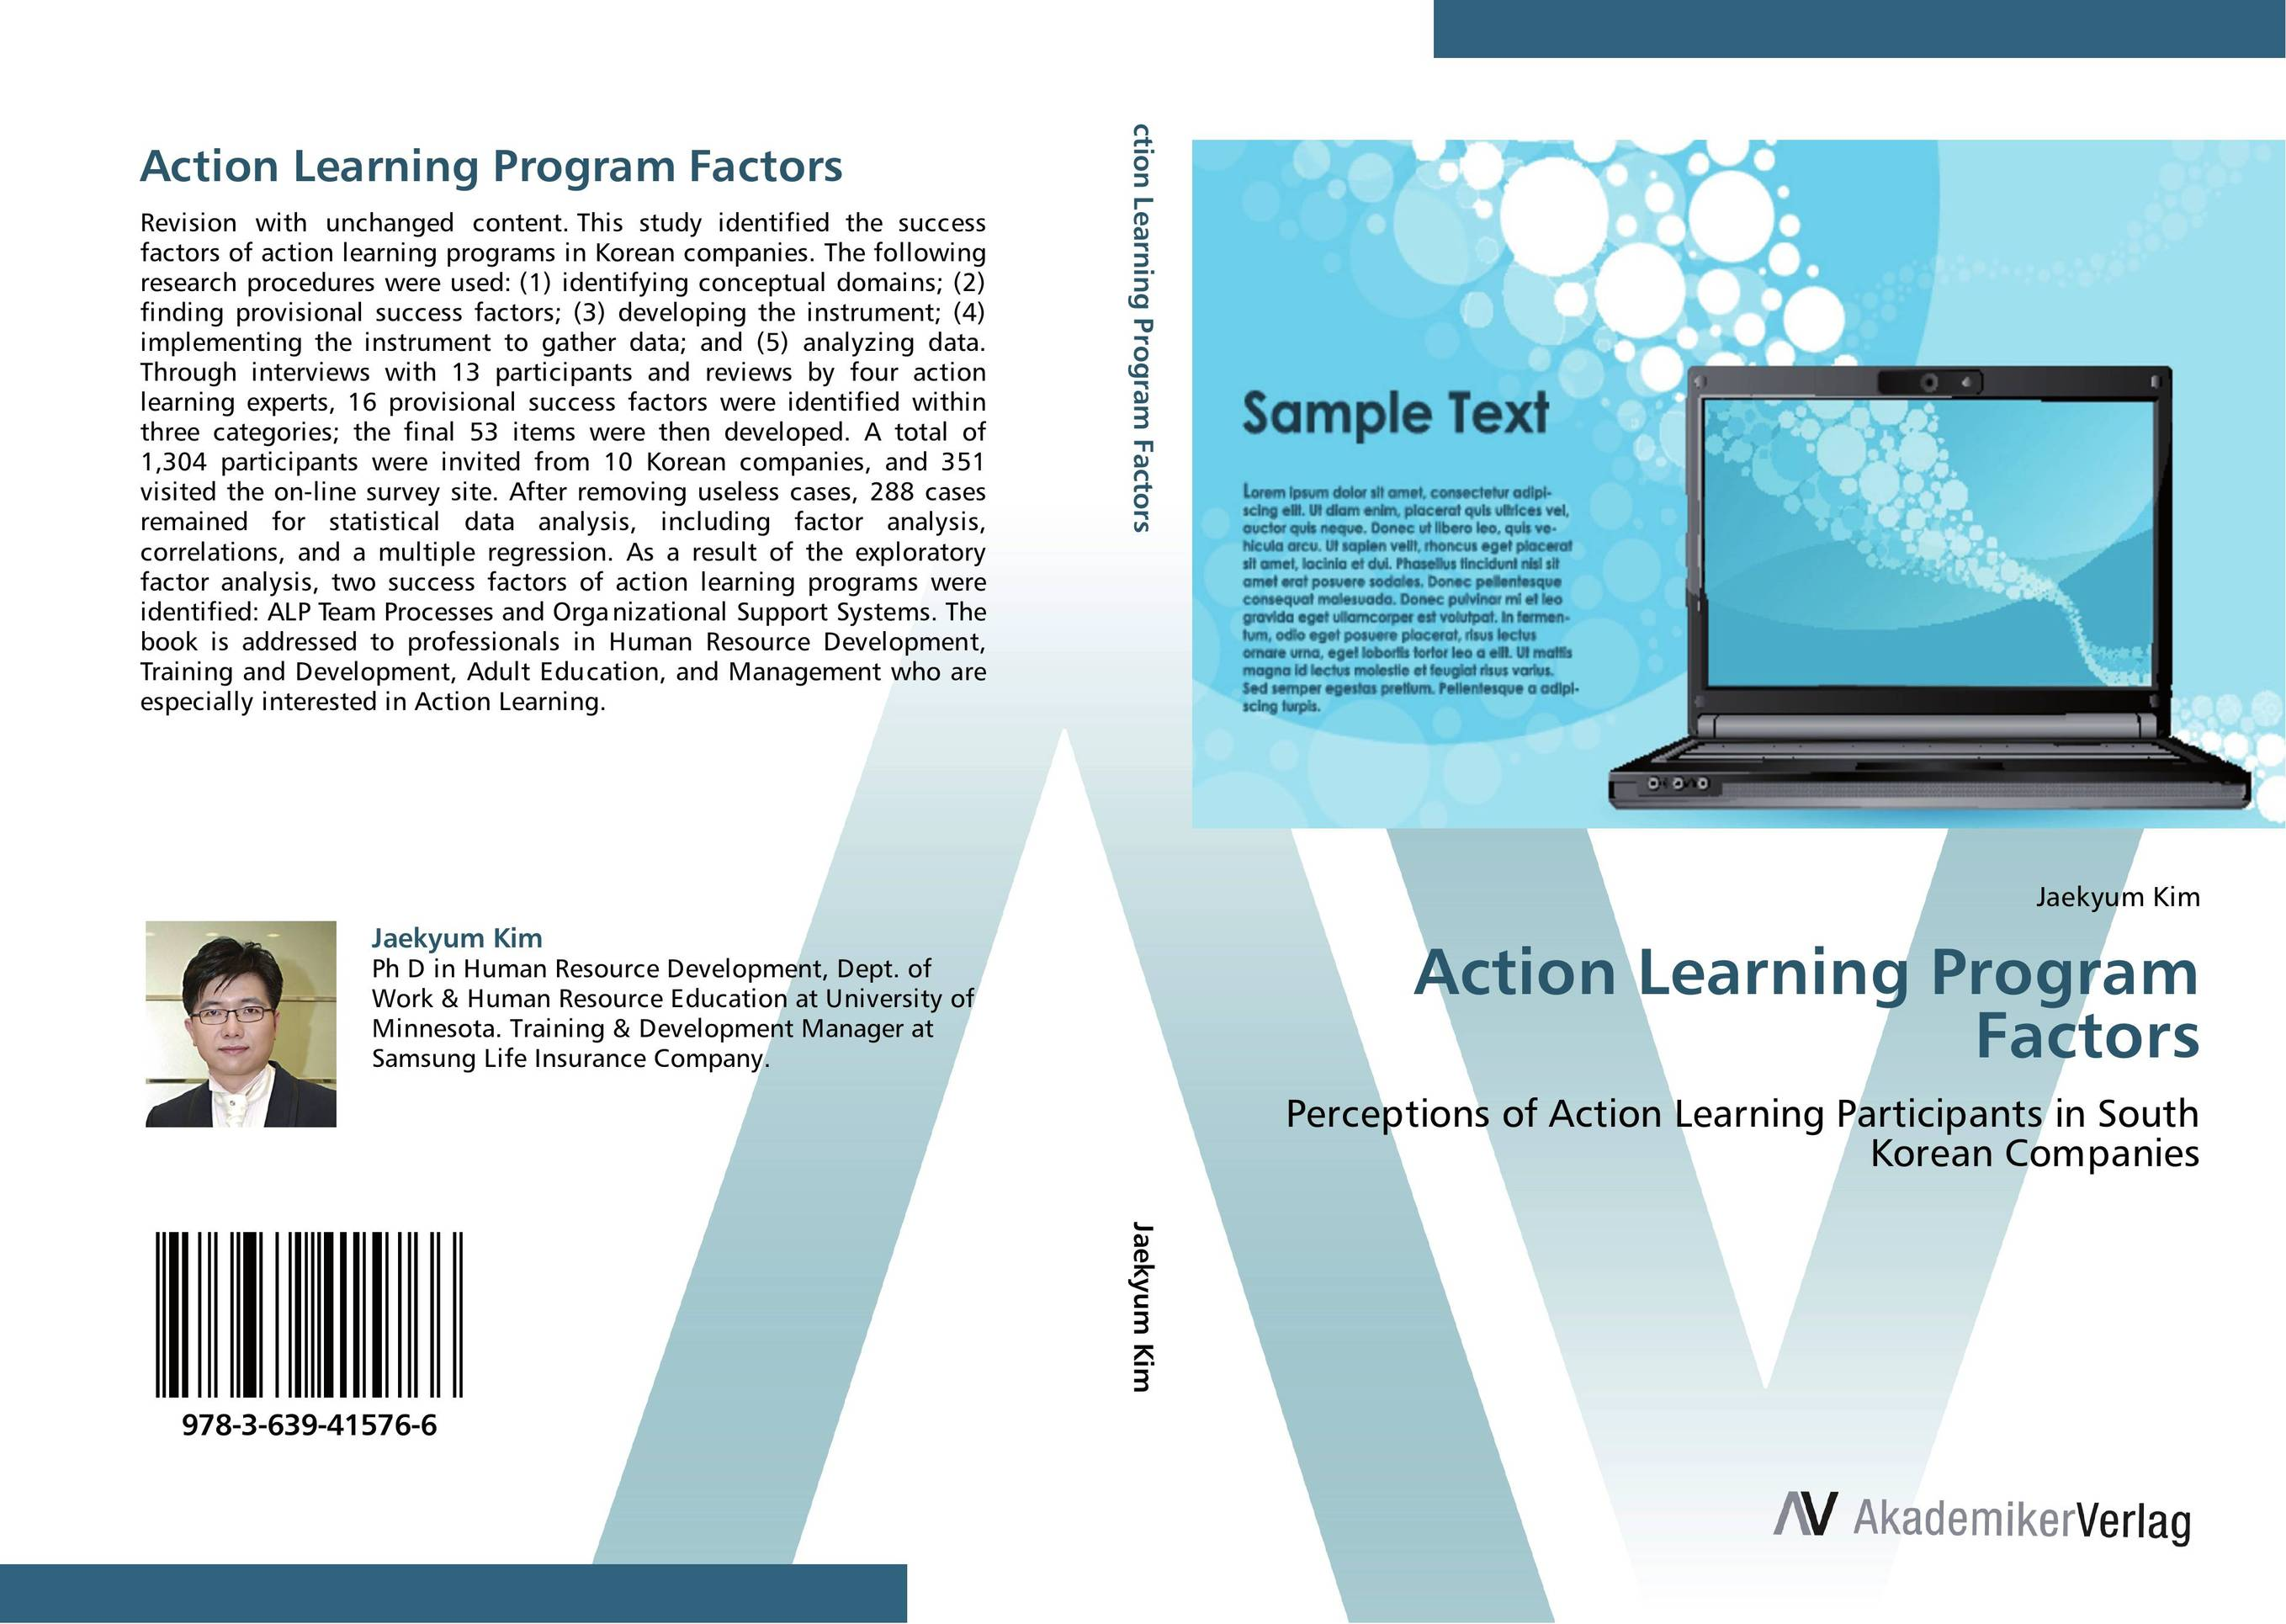 Action Learning Program Factors